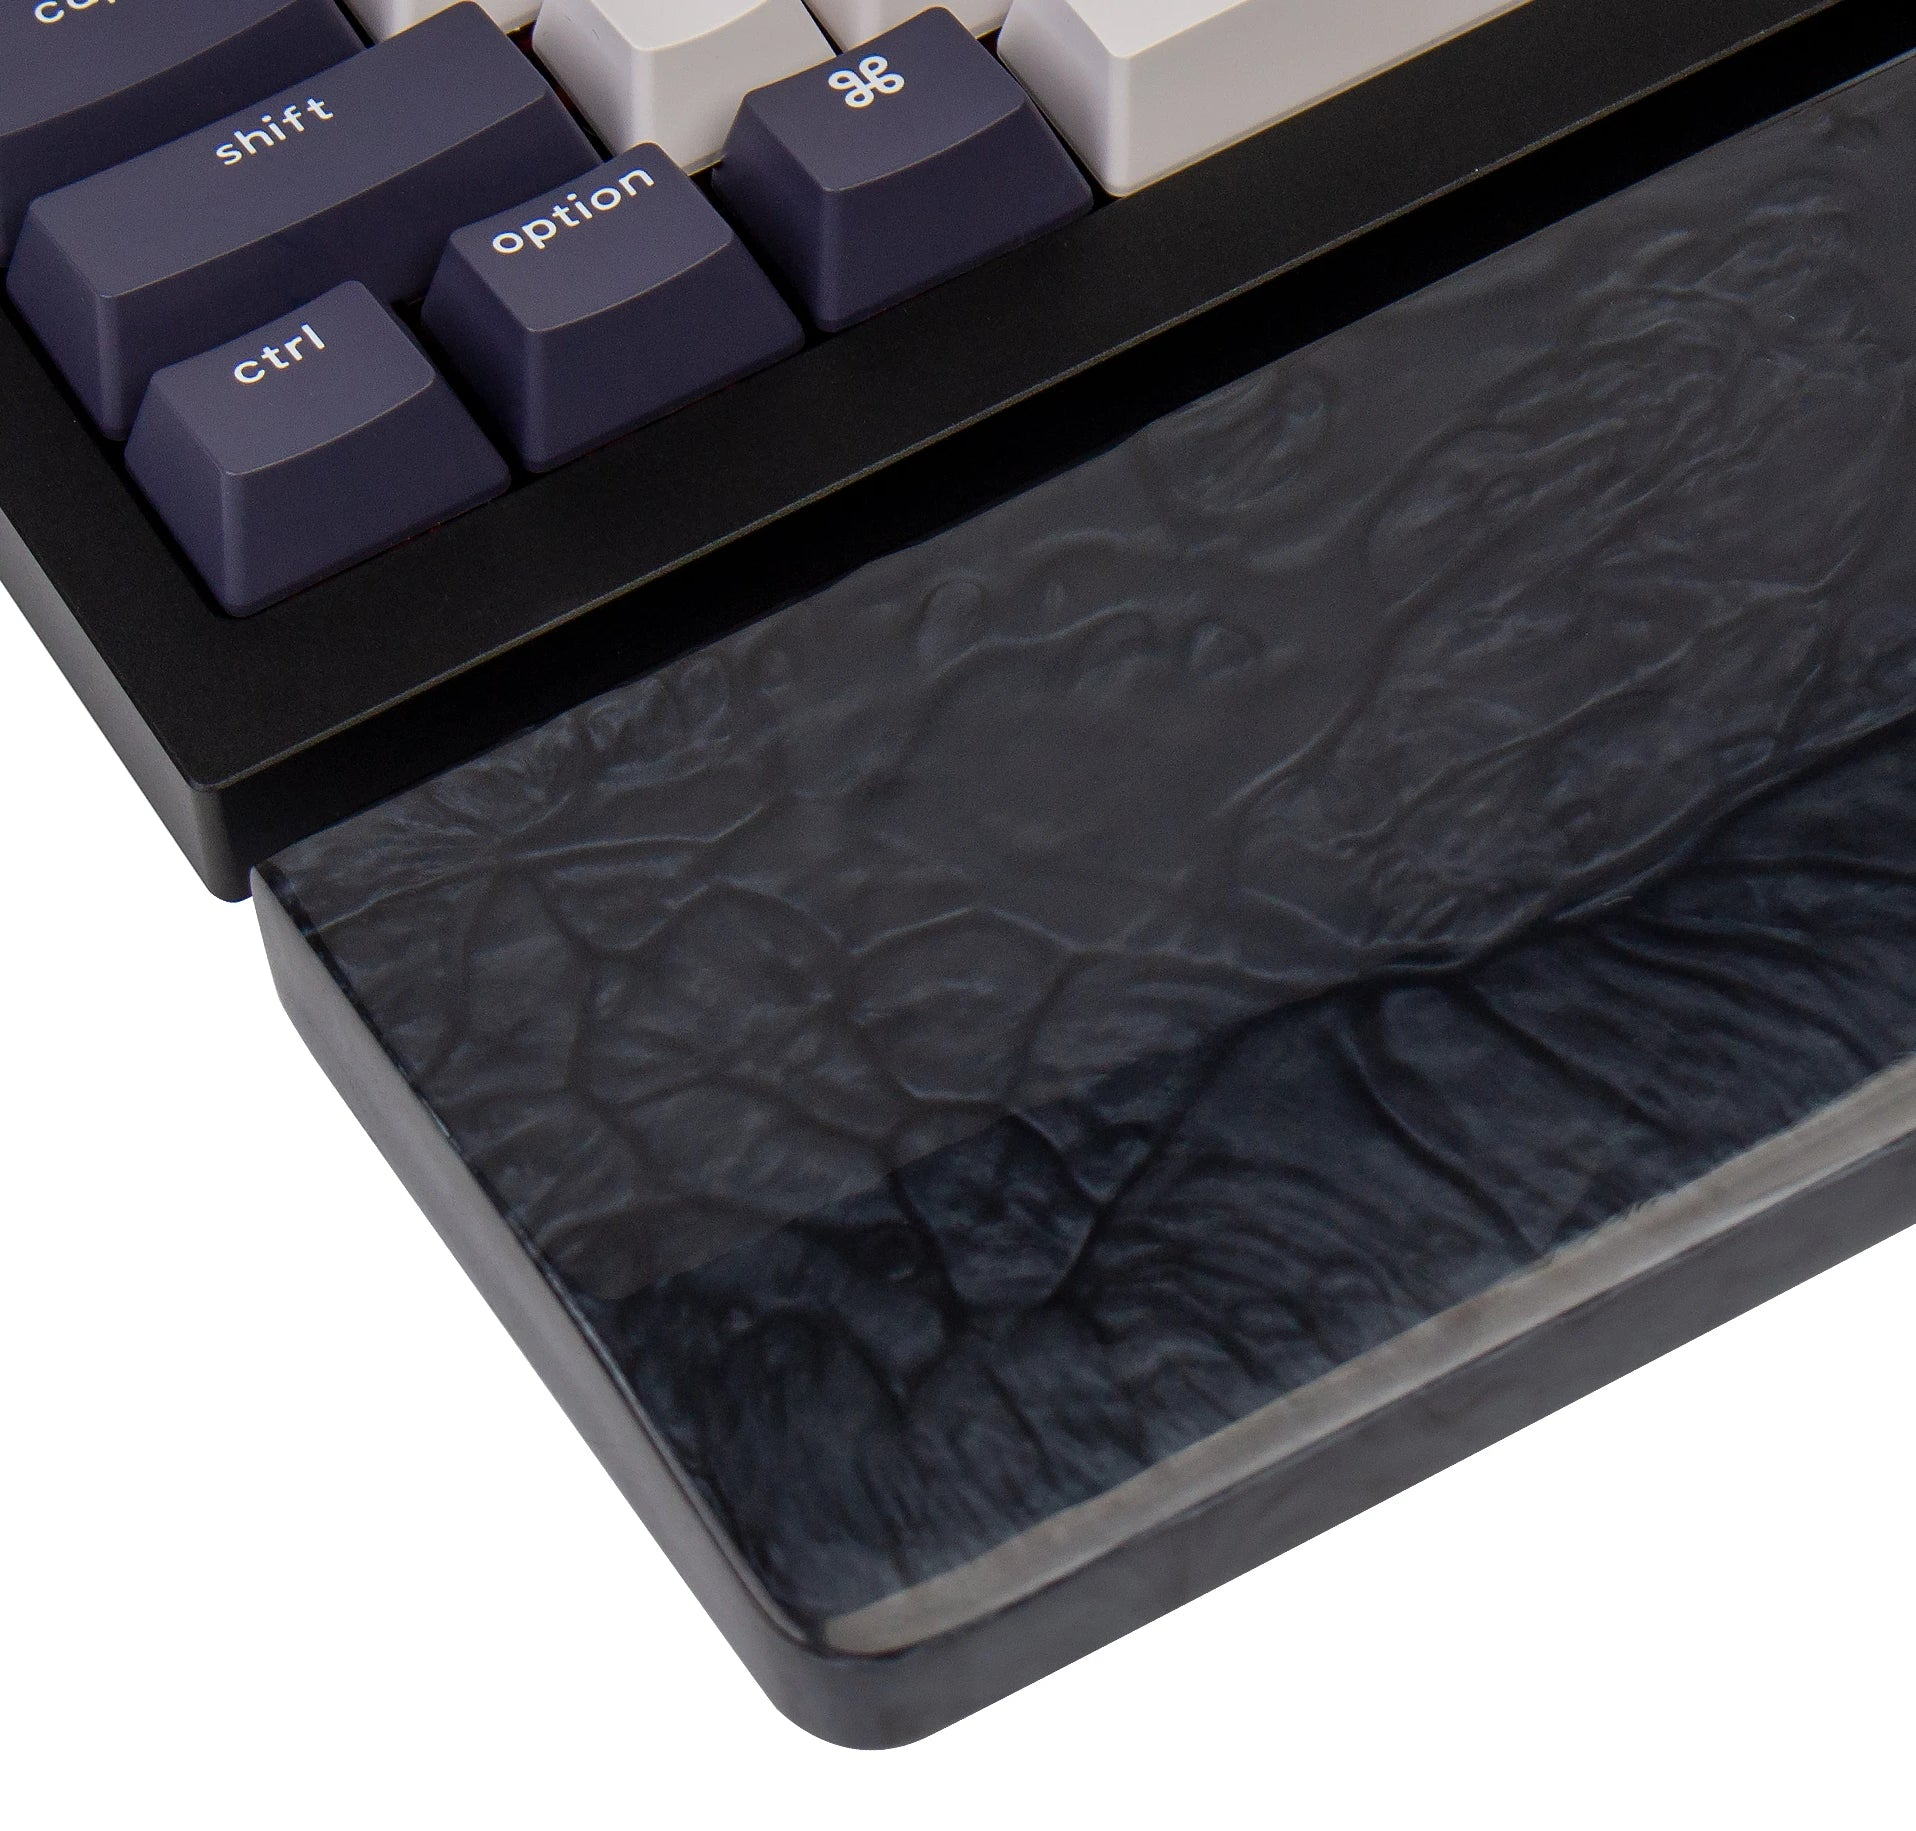 Keychron Resin and Wood Palm Rest